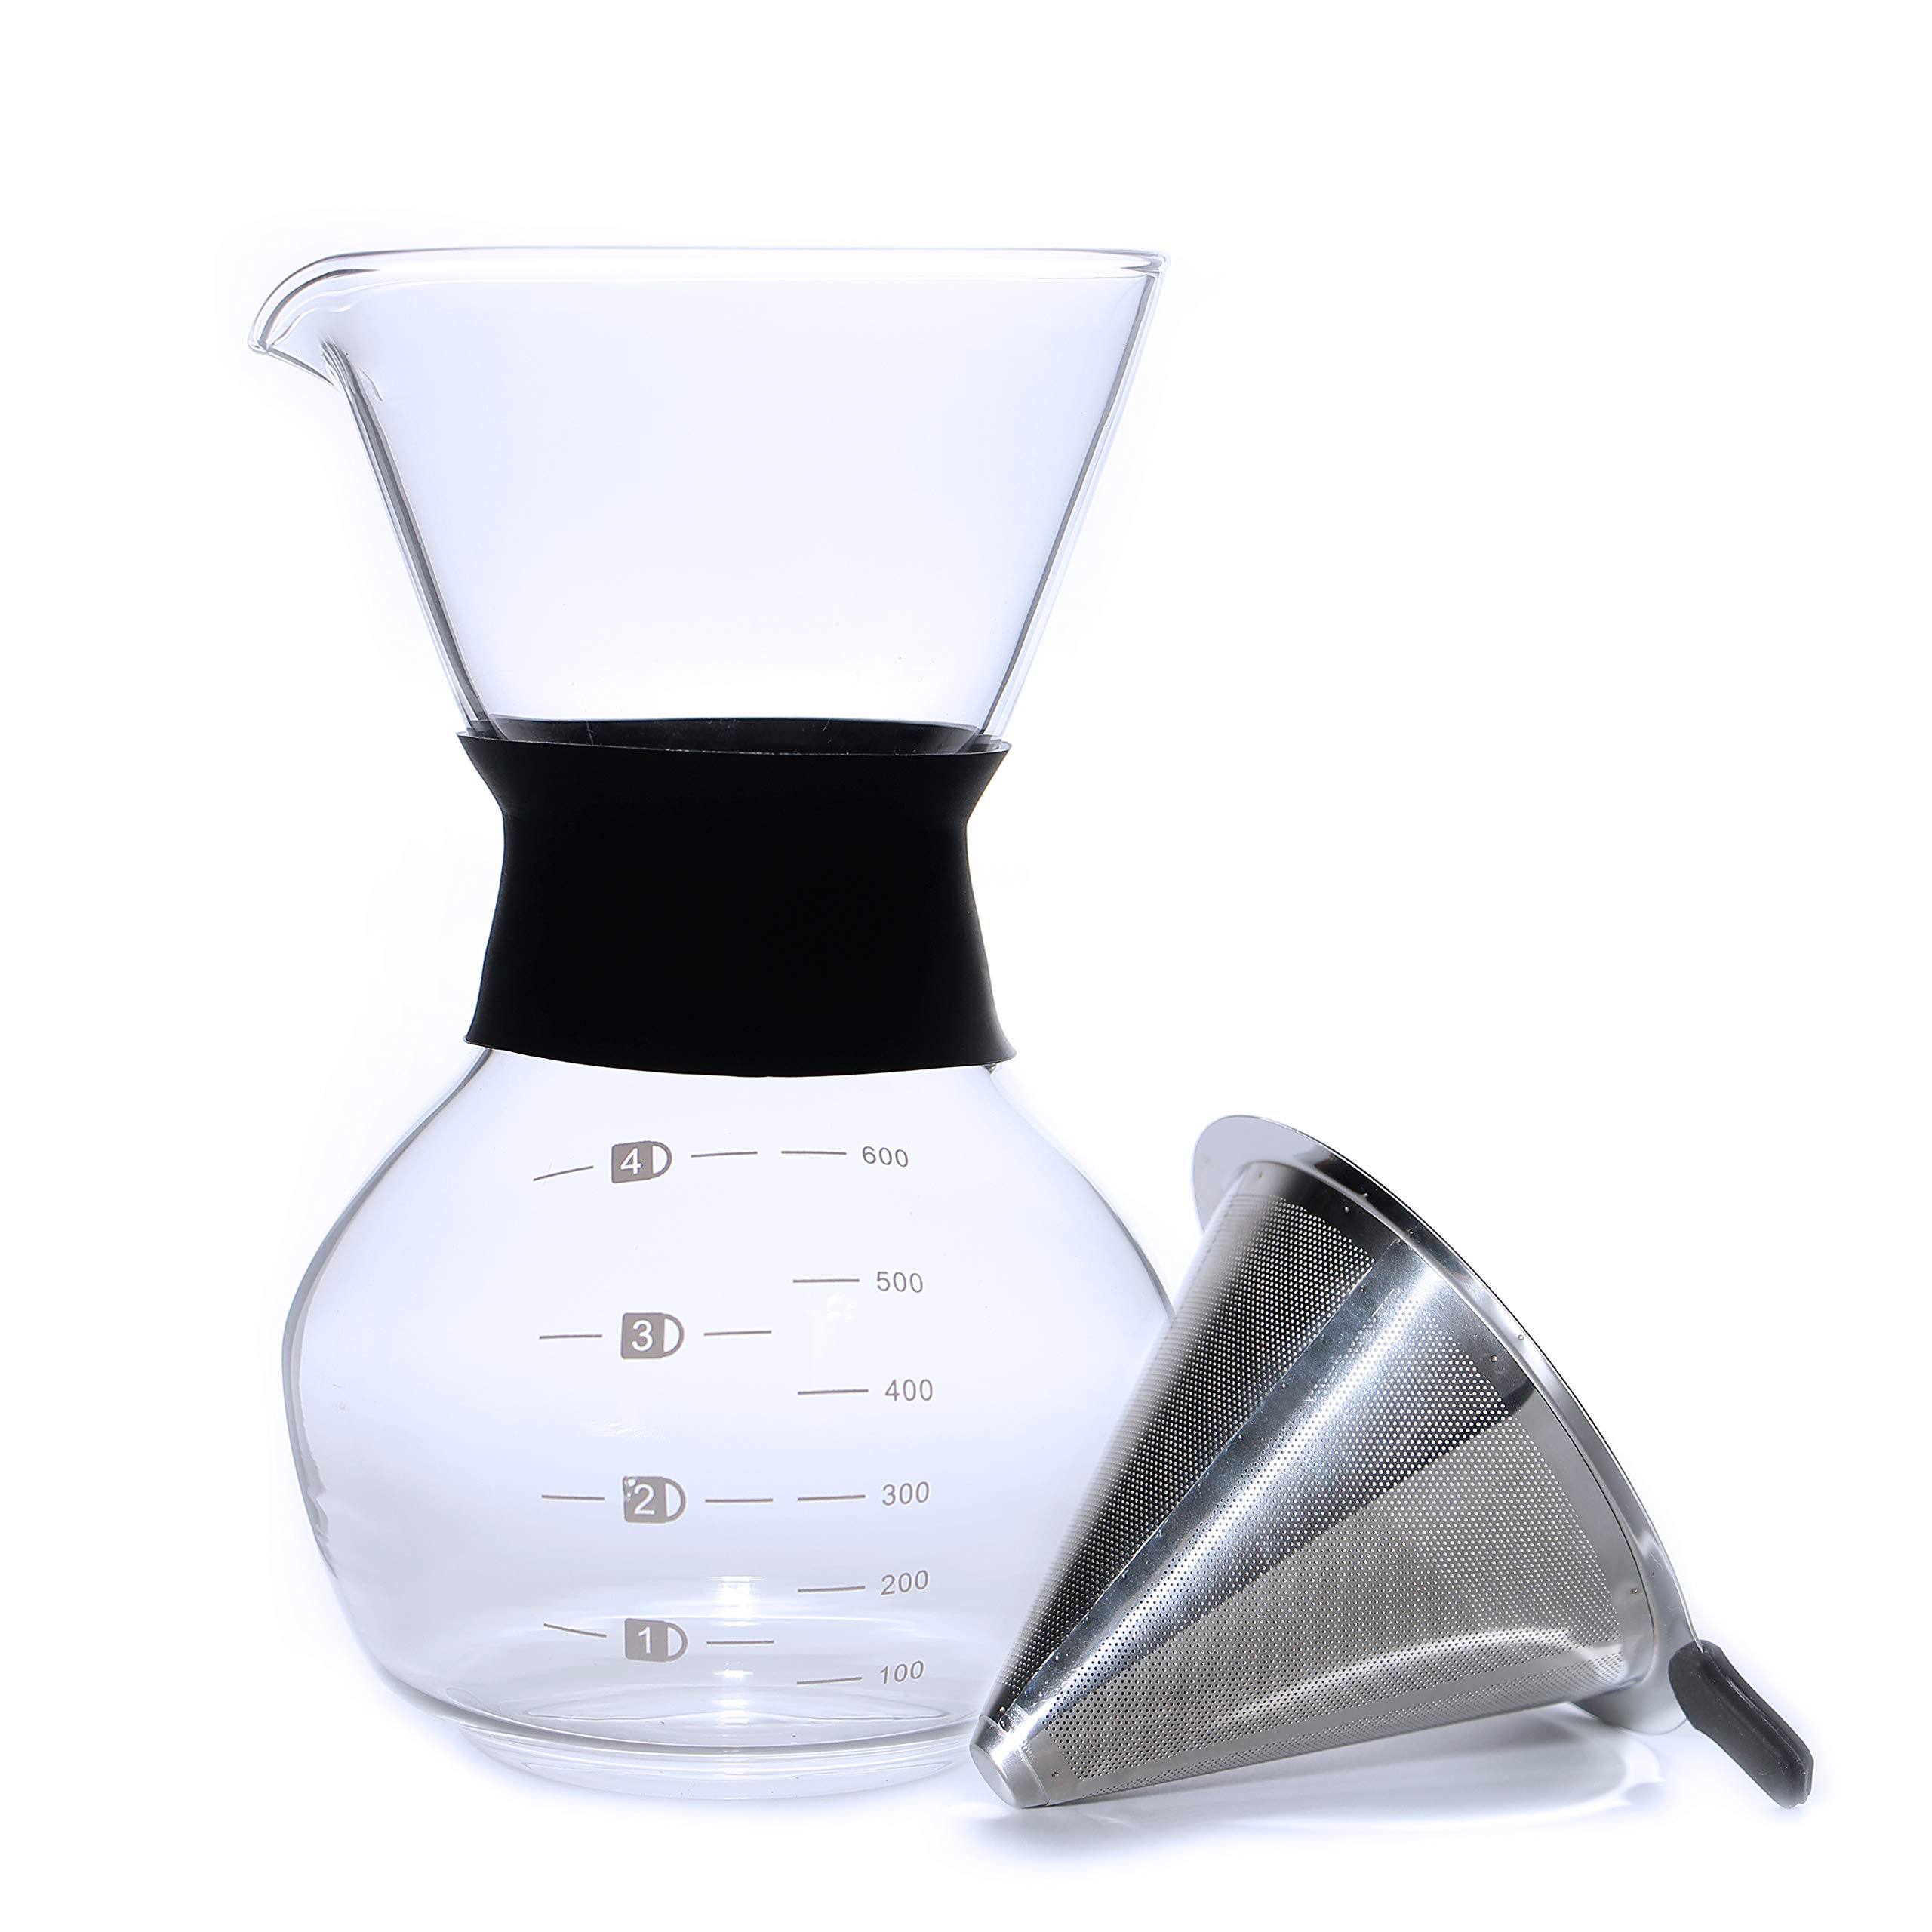 Pour Over Coffee Maker 20oz 600ml Borosilicate Glass Carafe, With Reusable Stainless Steel Filter/Dripper, Hand-Drip Coffee Maker, Easy to clean by Wells